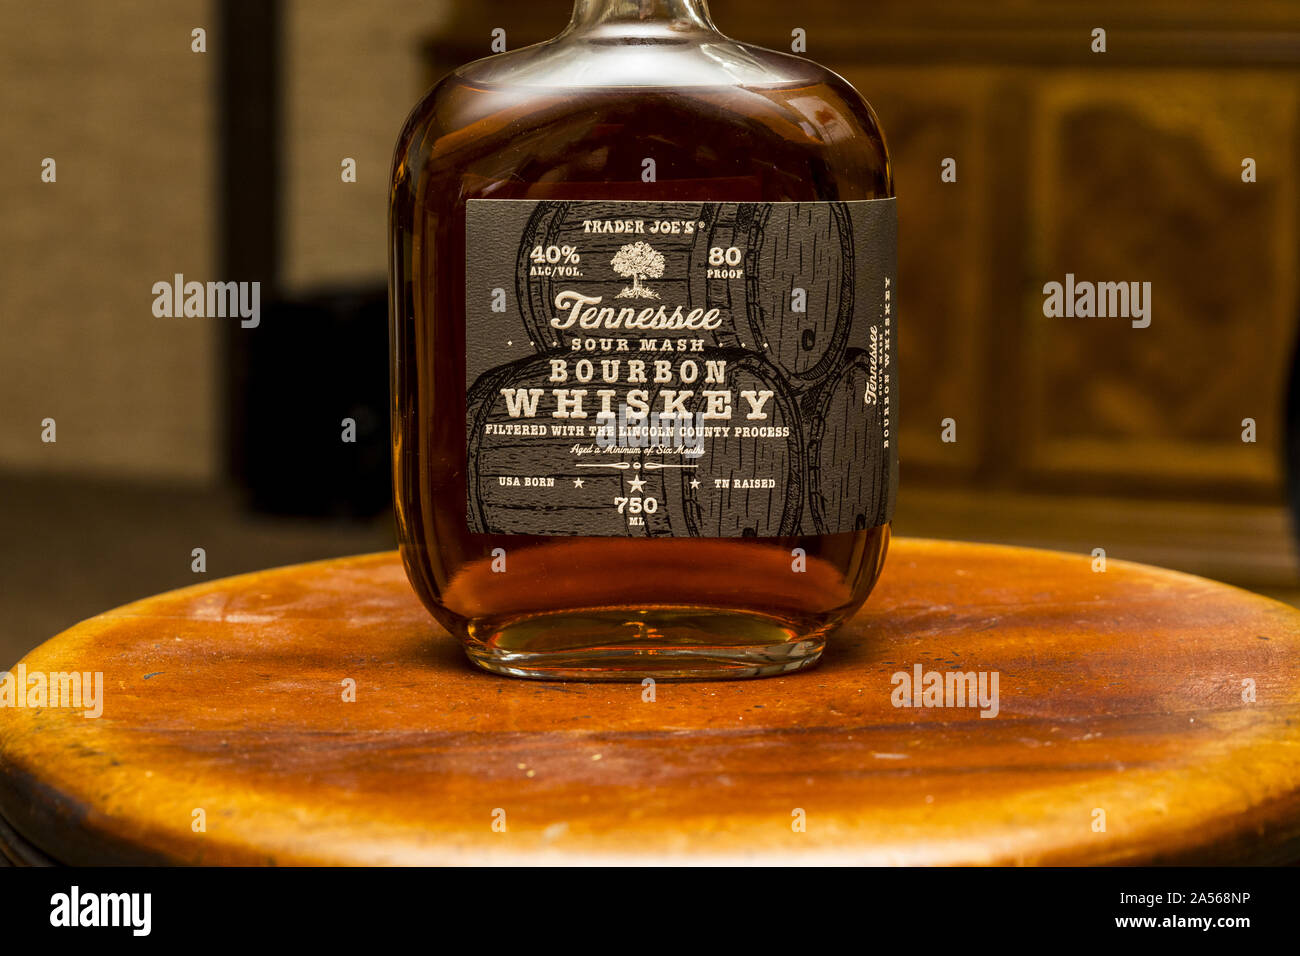 Trader Joe's brand Tennessee Bourbon Whiskey Stock Photo